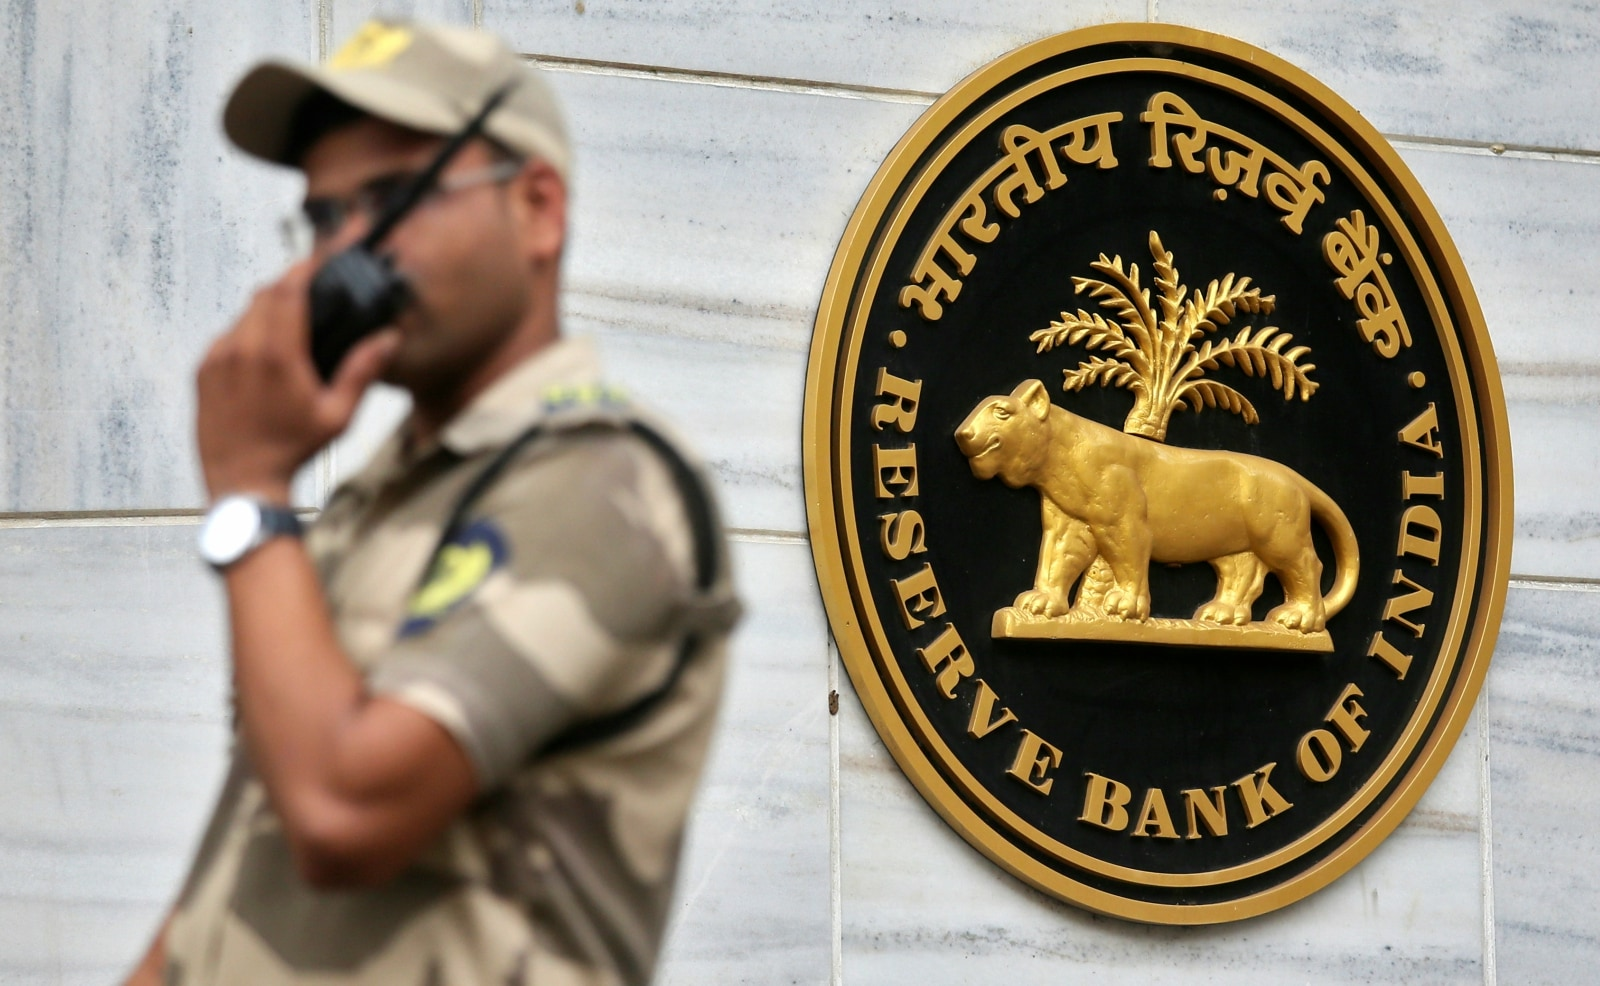 7. RBI Norms For NBFCs: The Reserve Bank of India Friday proposed a set of guidelines for large NBFCs to help them deal with severe liquidity problems and prevent re-occurrence of IL&FS type of debt crisis. With a view to ensuring a smooth transition to the LCR regime, the proposal is to implement it in a calibrated manner through a glide path over a period of four years commencing April 2020 and up to April 2024 (Image: Reuters)